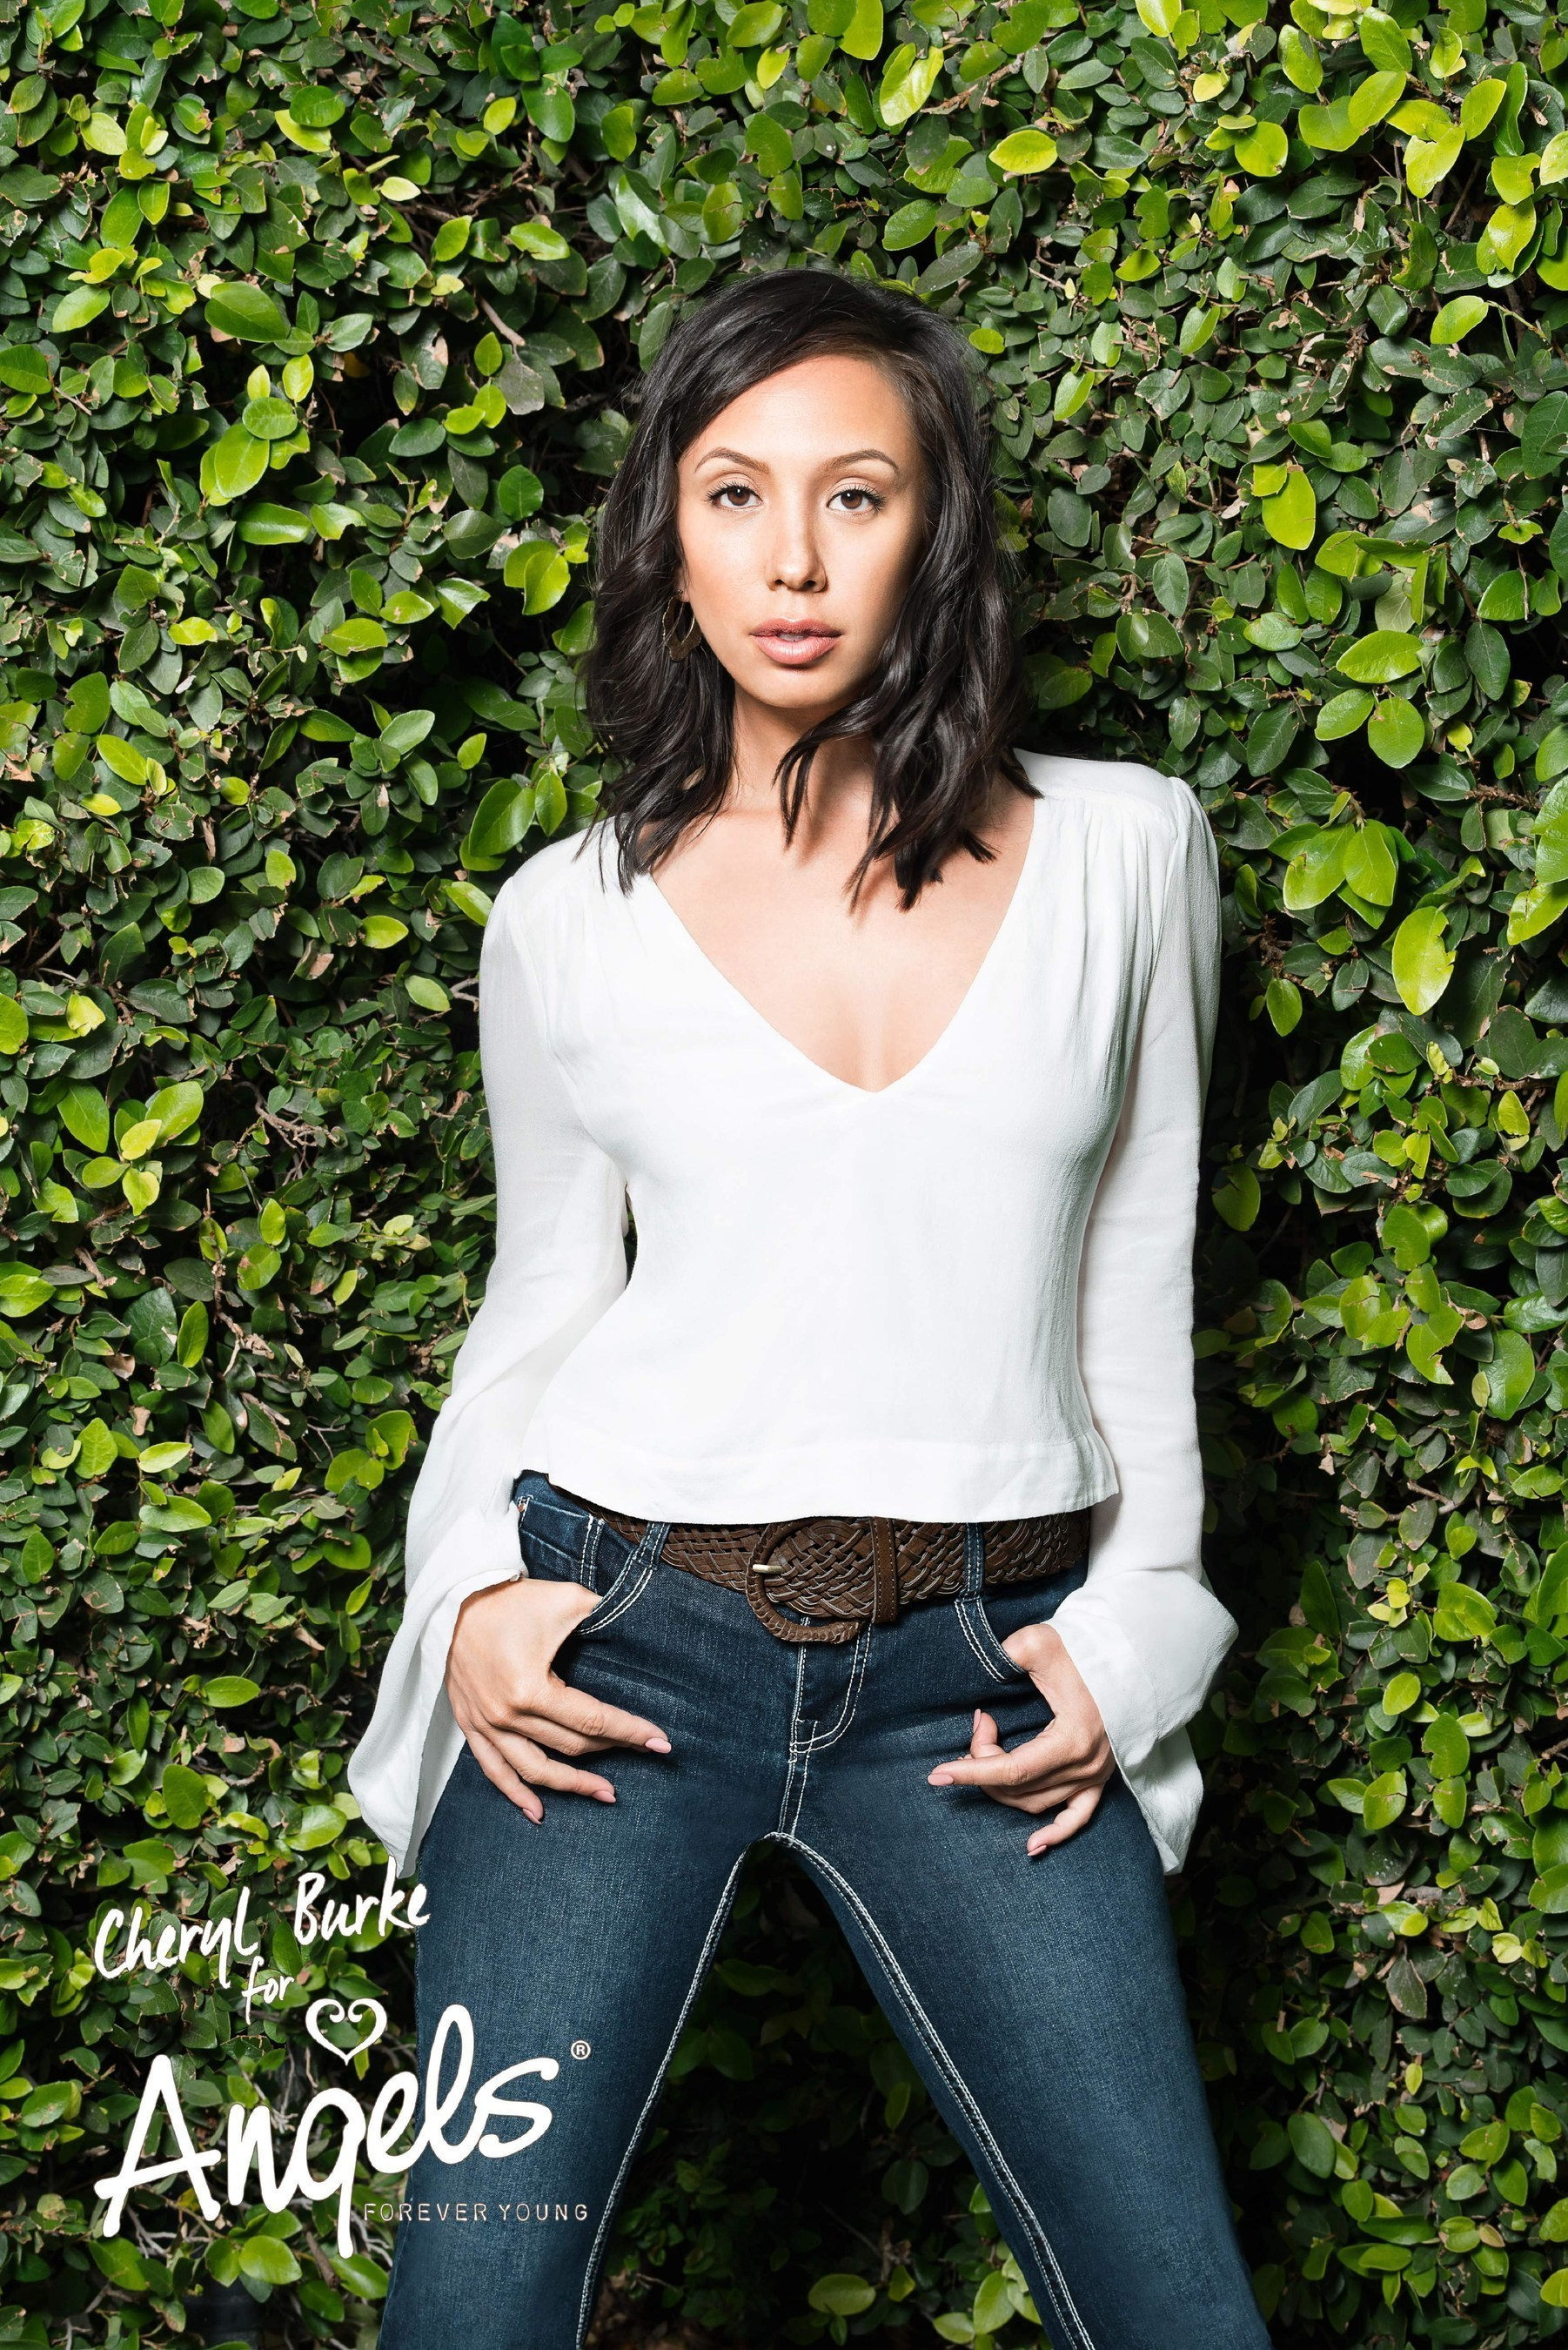 """DANCING WITH THE STARS"" CHAMPION CHERYL BURKE JOINS ANGELS FOREVER YOUNG AS FIRST-EVER BRAND AMBASSADOR"